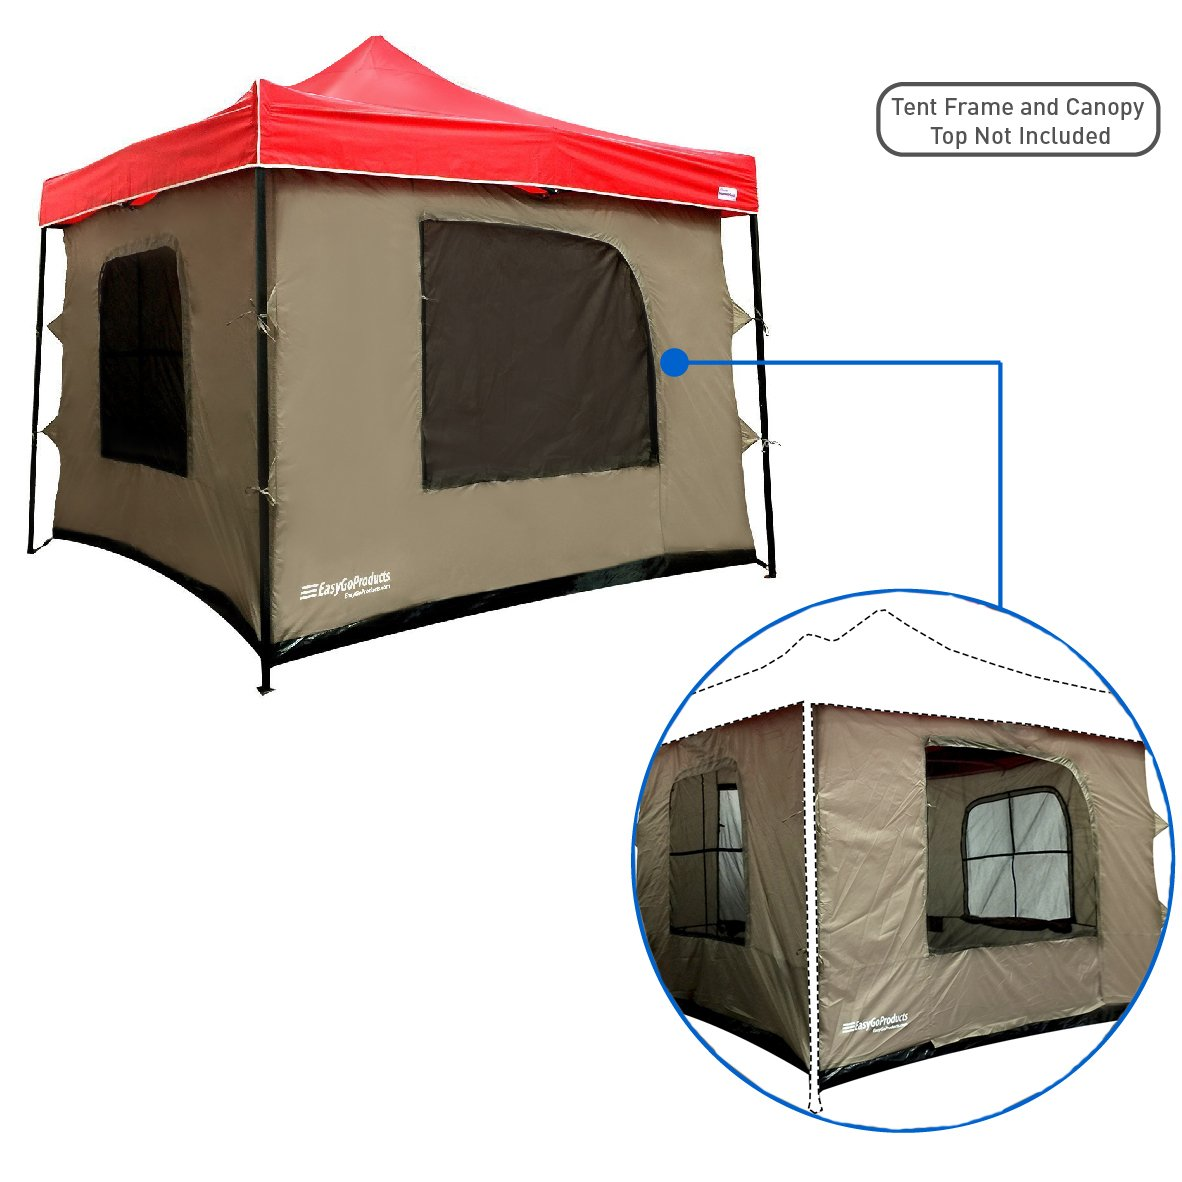 Camping Tent attaches to any 10'x10' Easy Up Pop Up Canopy Tent with 4 Walls, PVC Floor, 2 Doors and 4 Windows - Vented Roof - Standing Tent - Family Room Tent - TENT FRAME AND CANOPY NOT INCLUDED